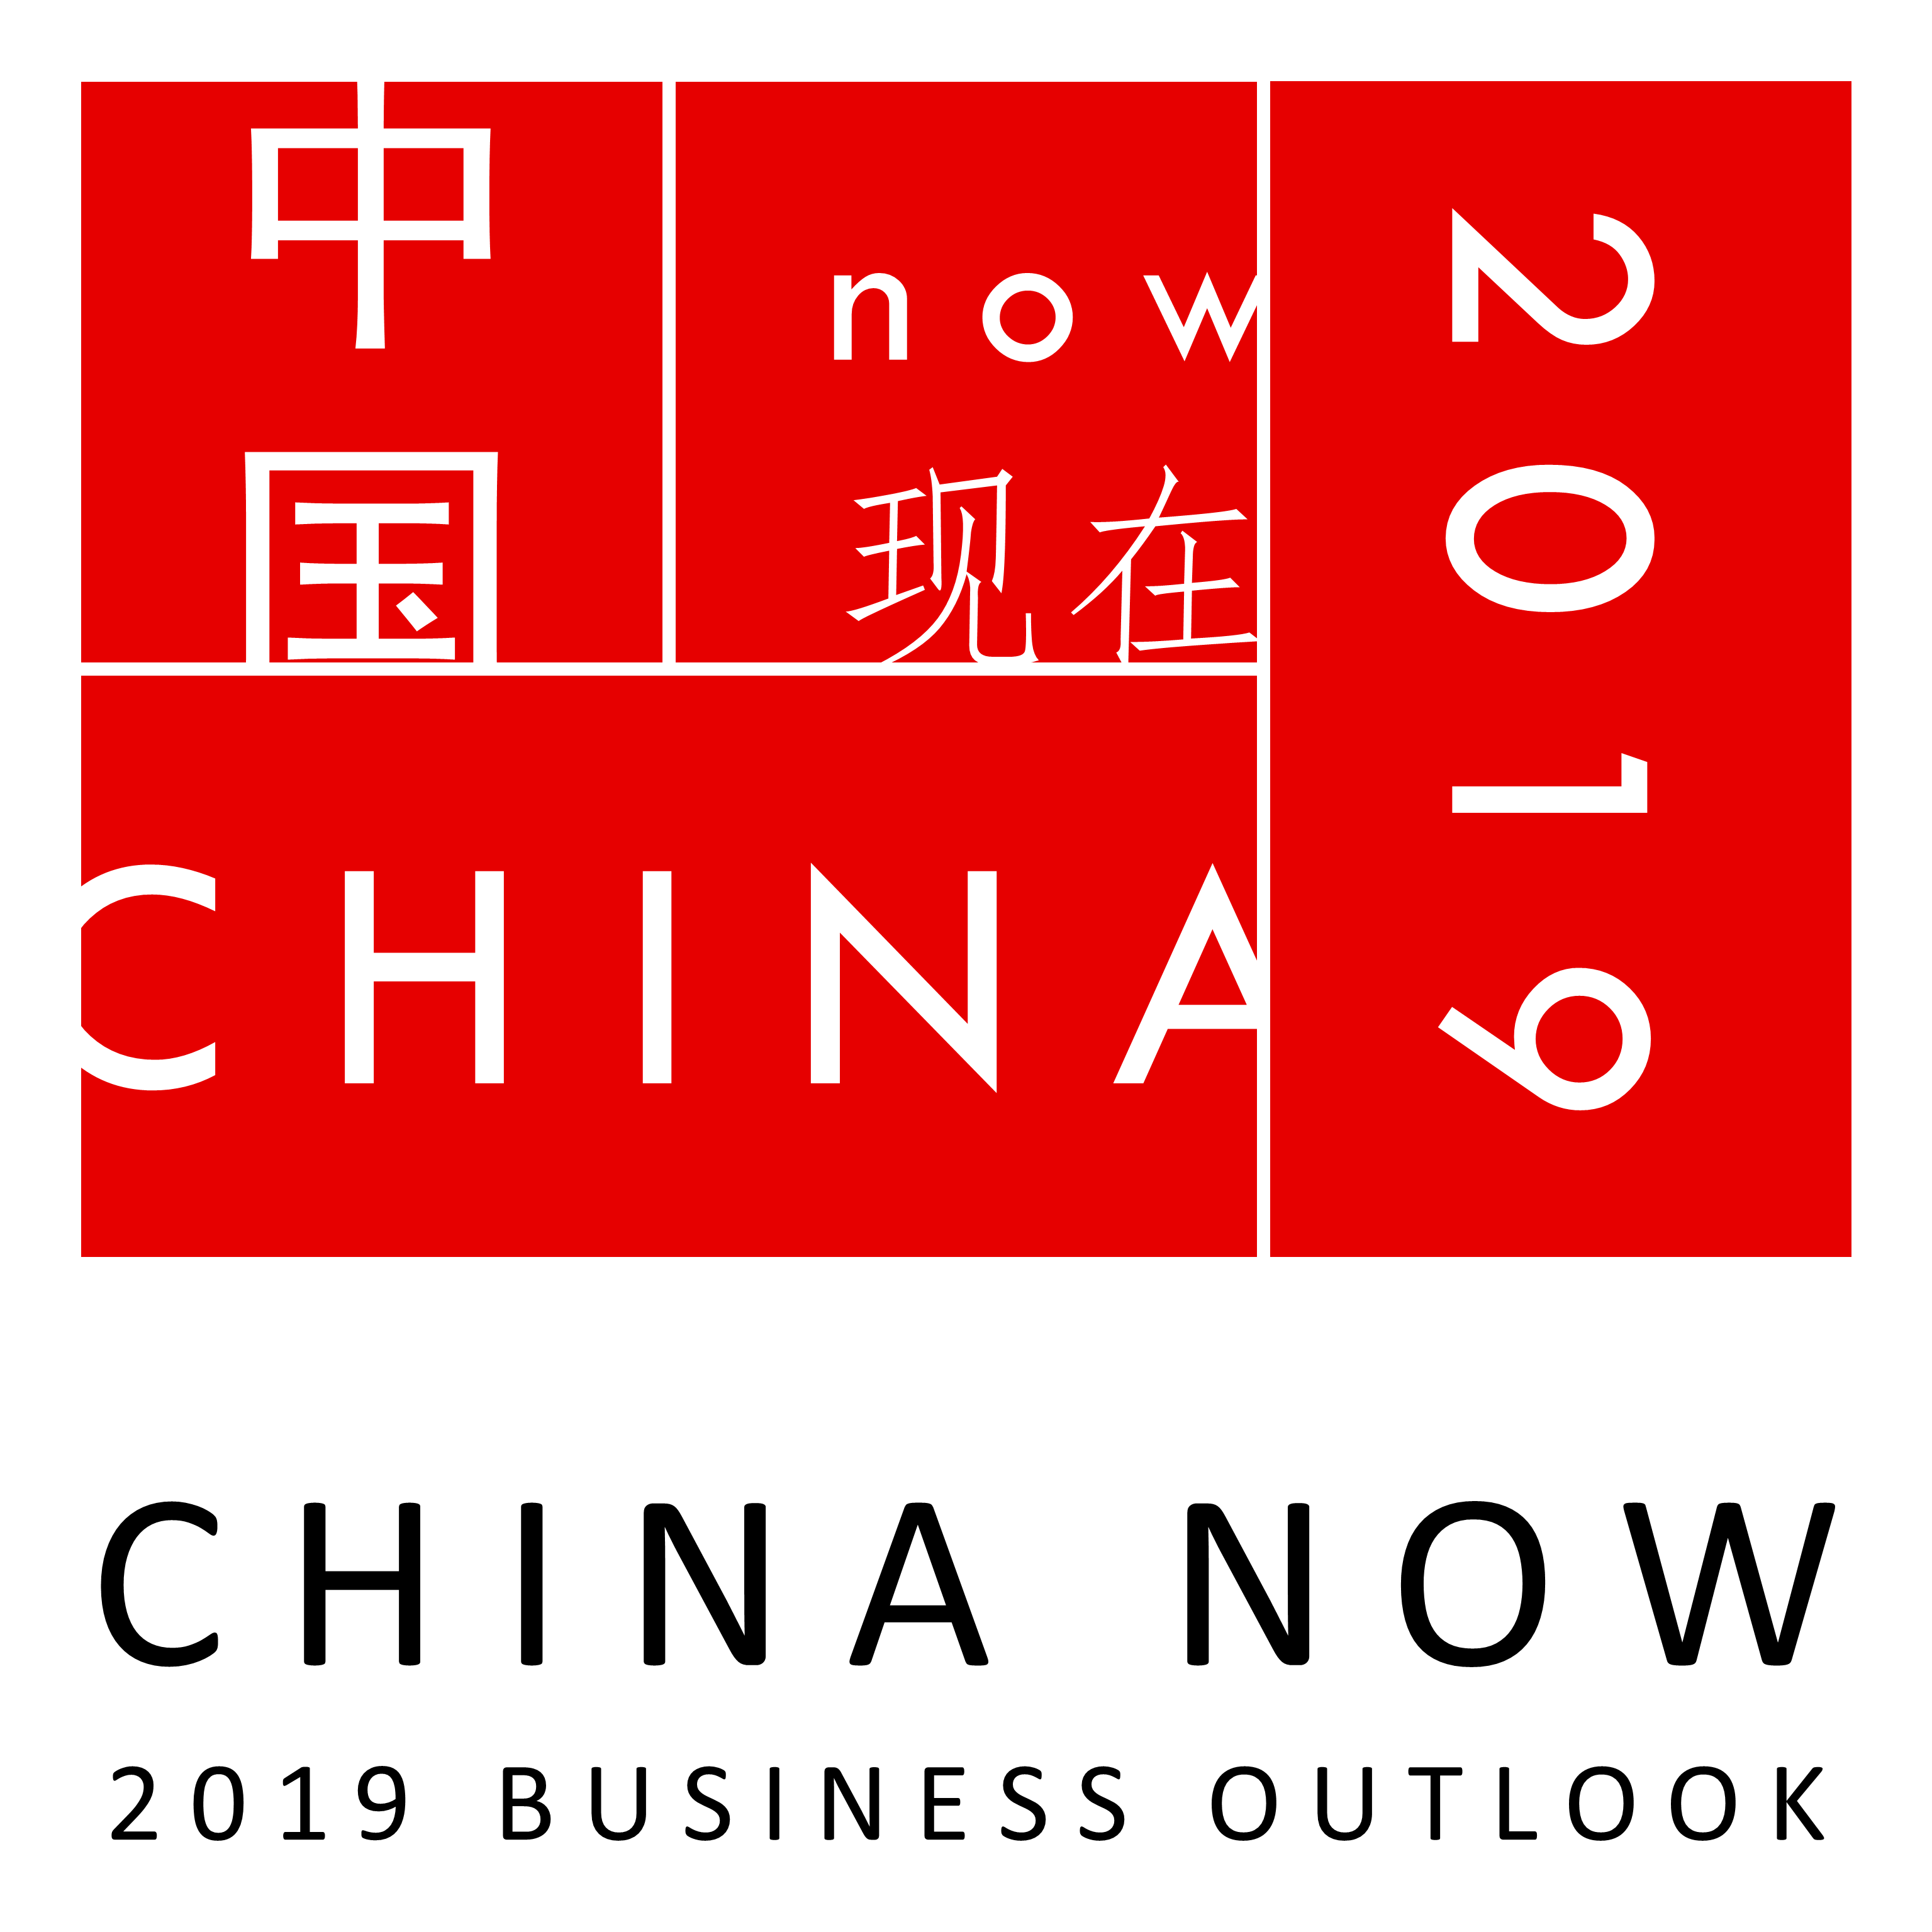 CHINA NOW: 2019 Business Outlook